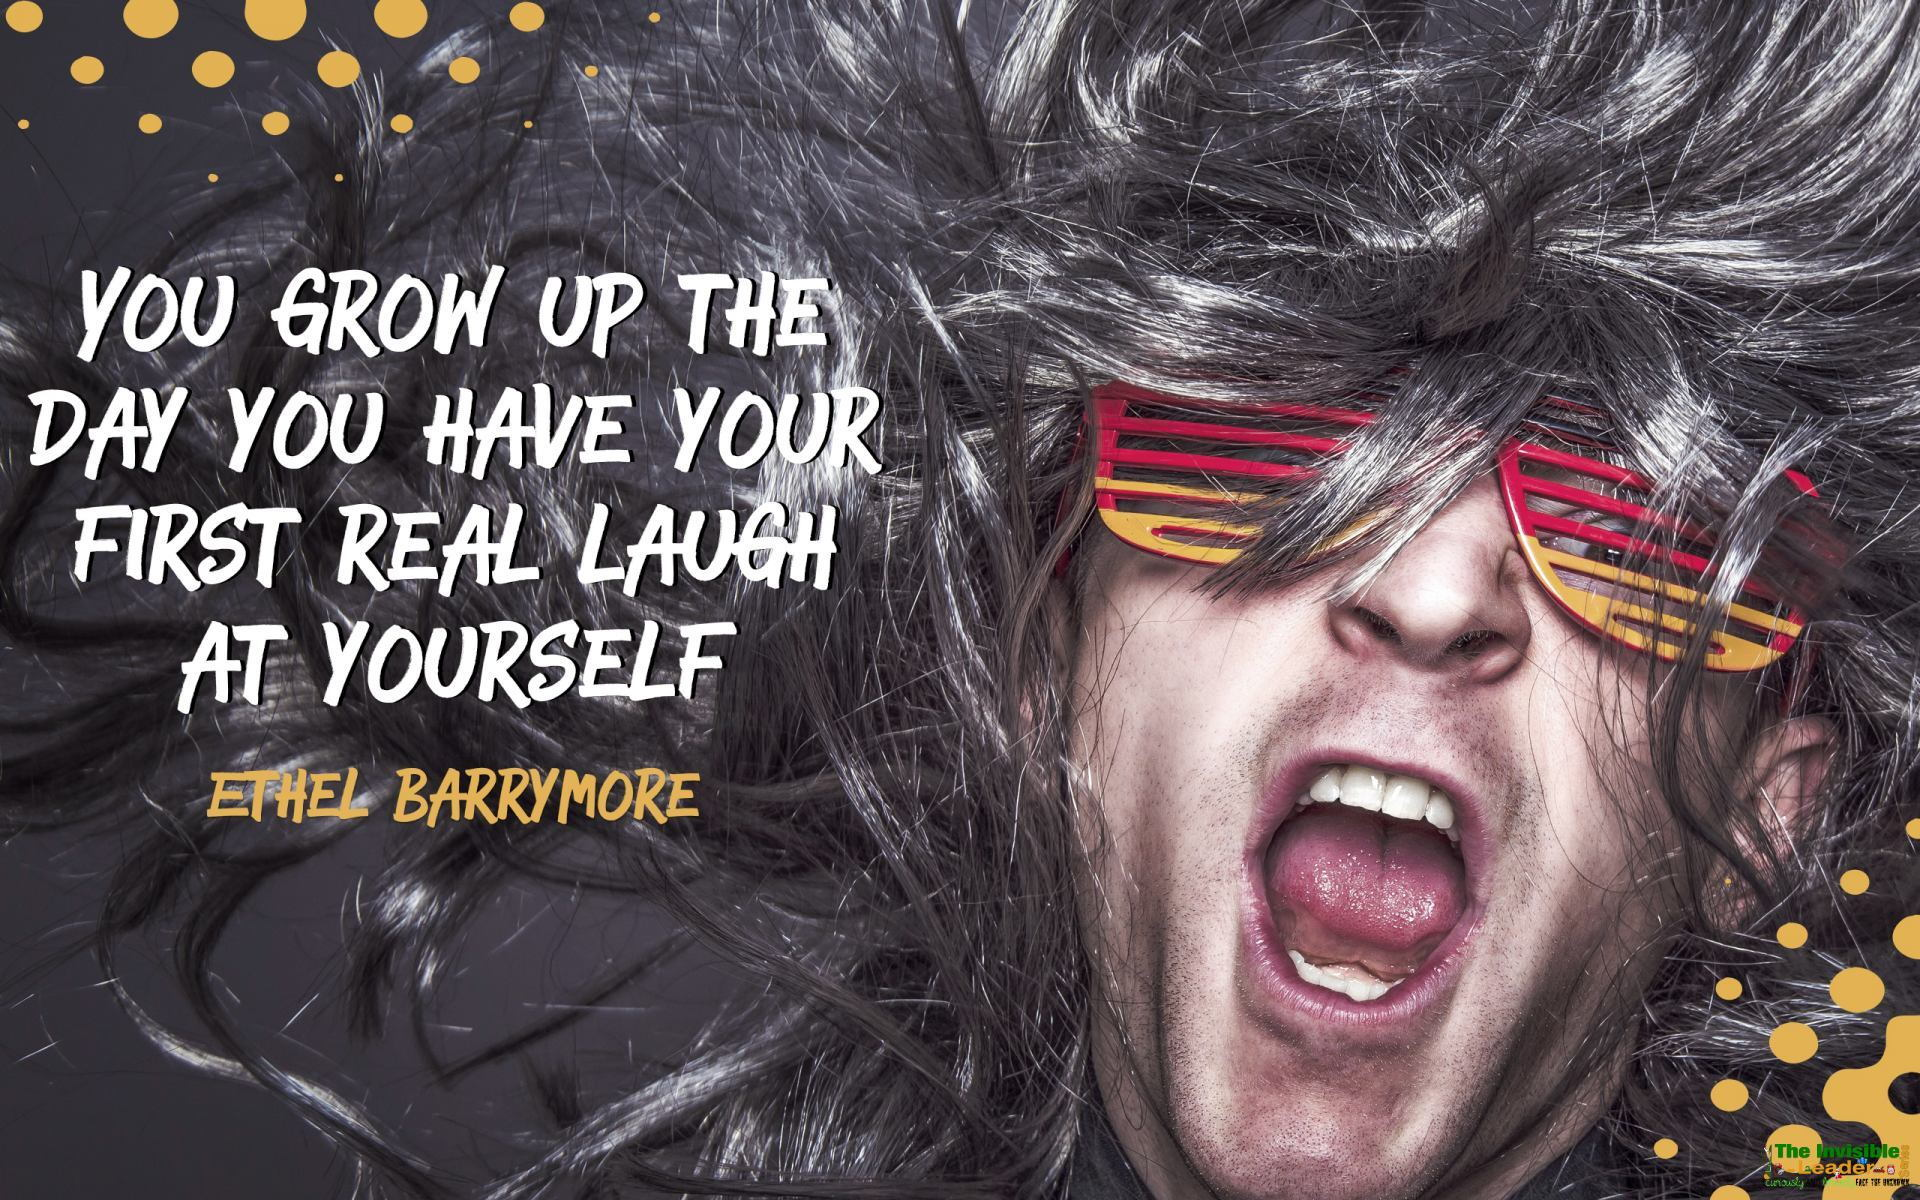 """YOU GROW UP THE DAY YOU HAVE YOUR FIRST REAL LAUGH AT YOURSELF"" BY ETHEL BARRYMORE [1920×1200]"